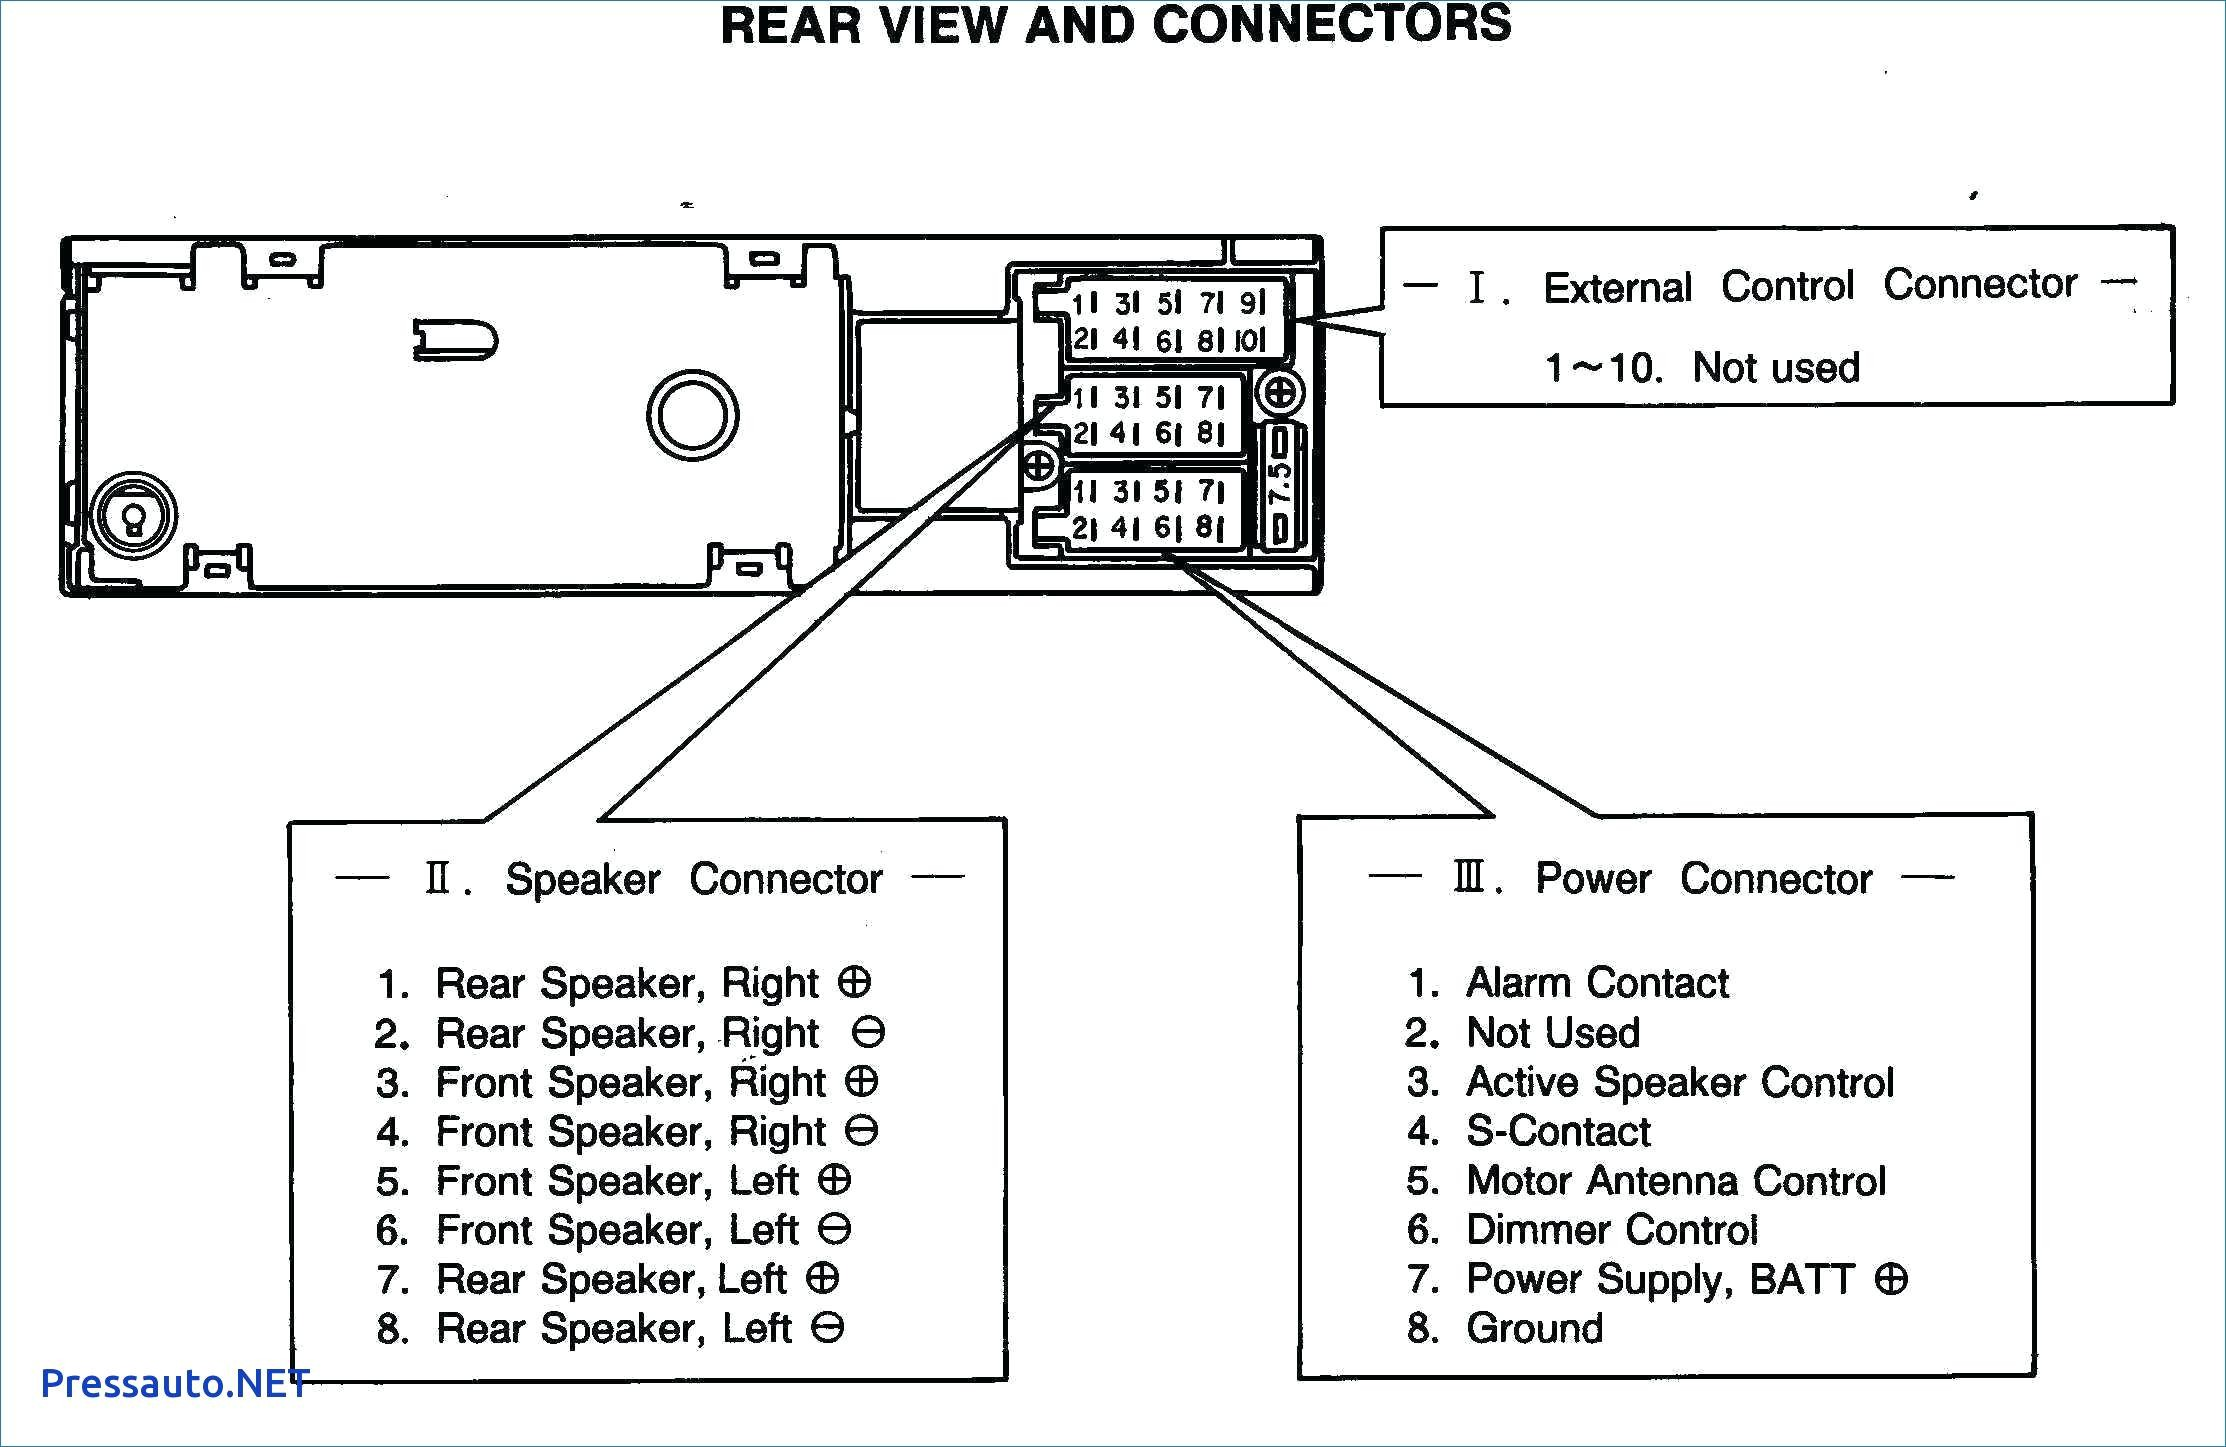 Jeep Cherokee Engine Diagram Kia Spectra Wiring 1999 99 Grand Starter 2003 Sensor Forum Of